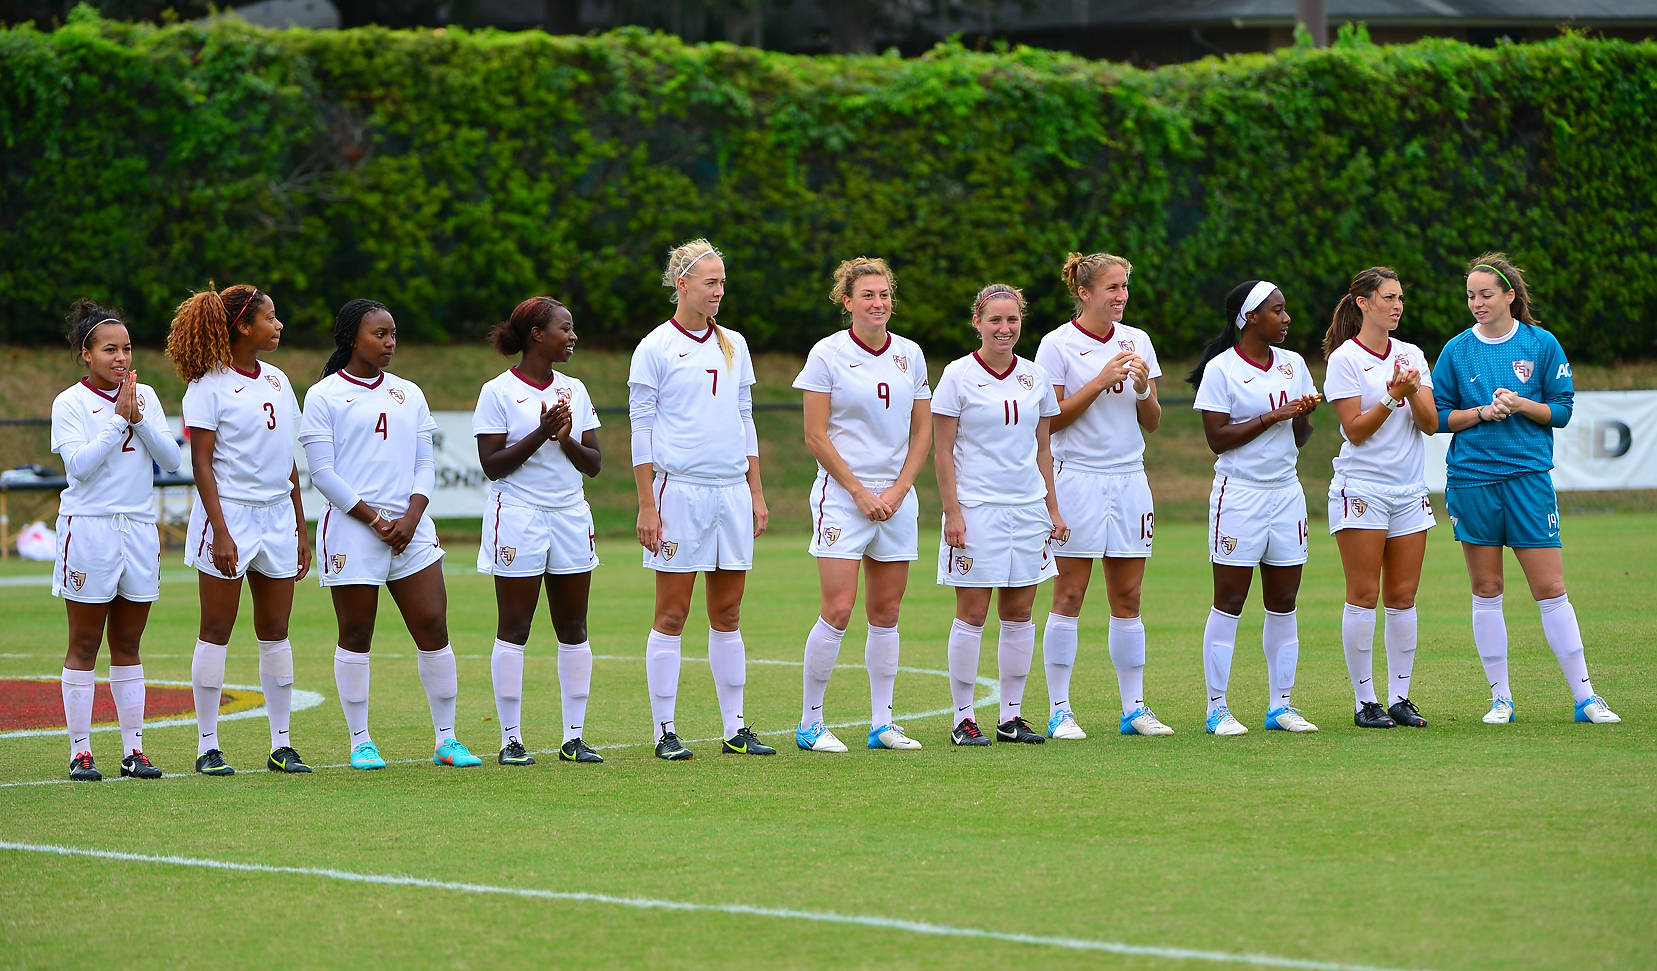 Florida State during the starting line-ups